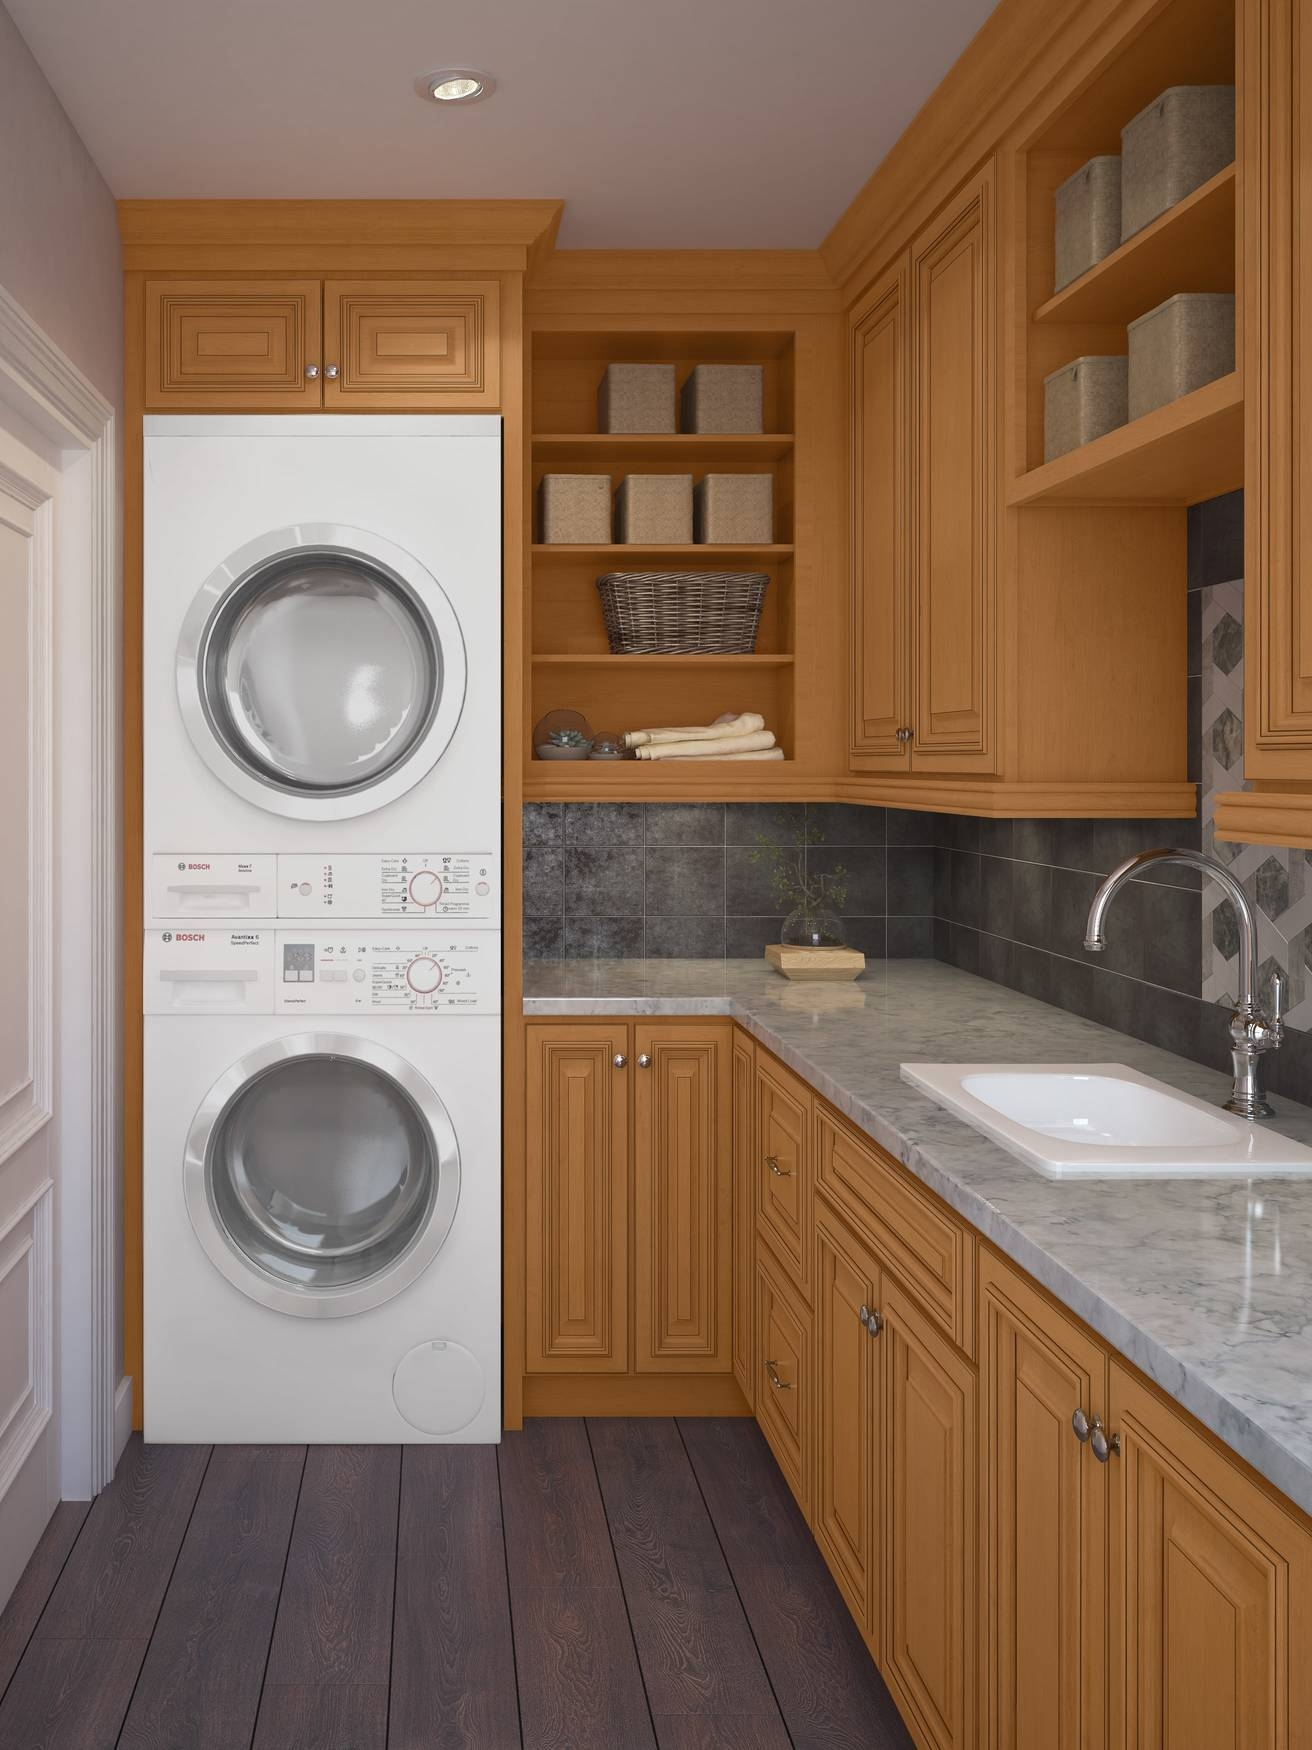 Laundry Room Countertop Material High Quality Laundry Room Cabinets Willow Lane Cabinetry